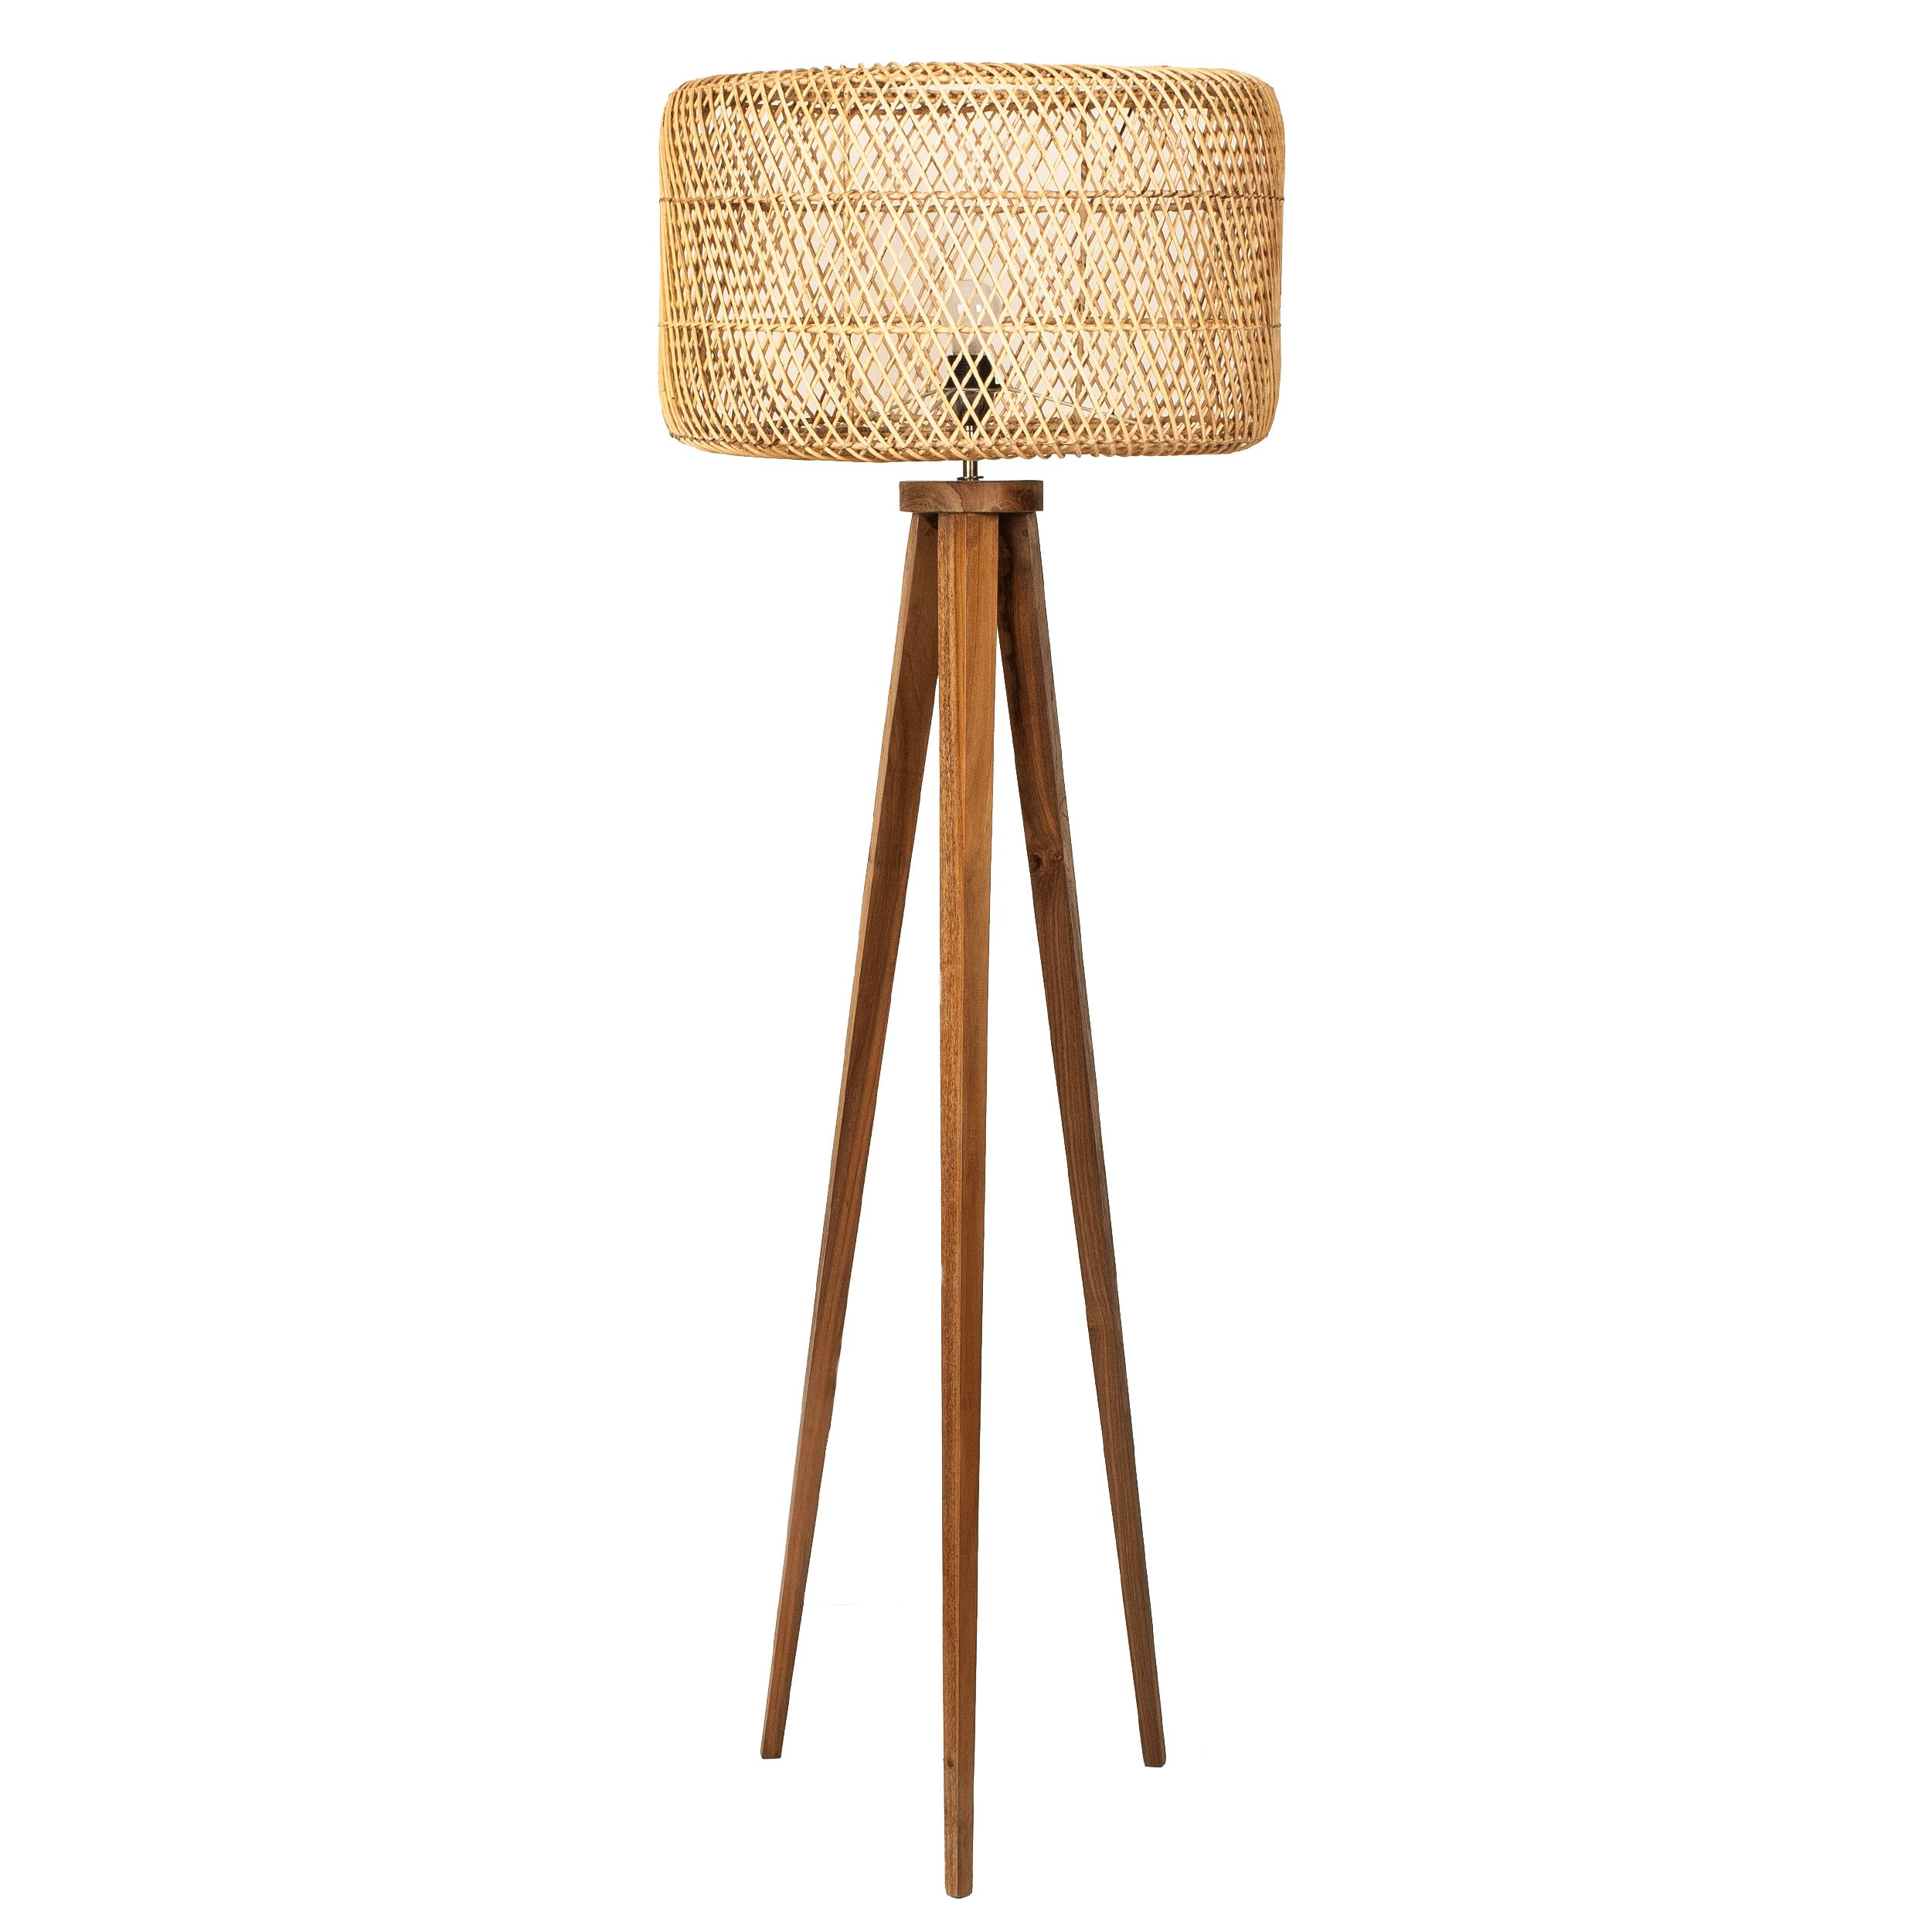 Coya Floor Lamp Nala Lighting Lamp Floor Lamp Pendent Lighting